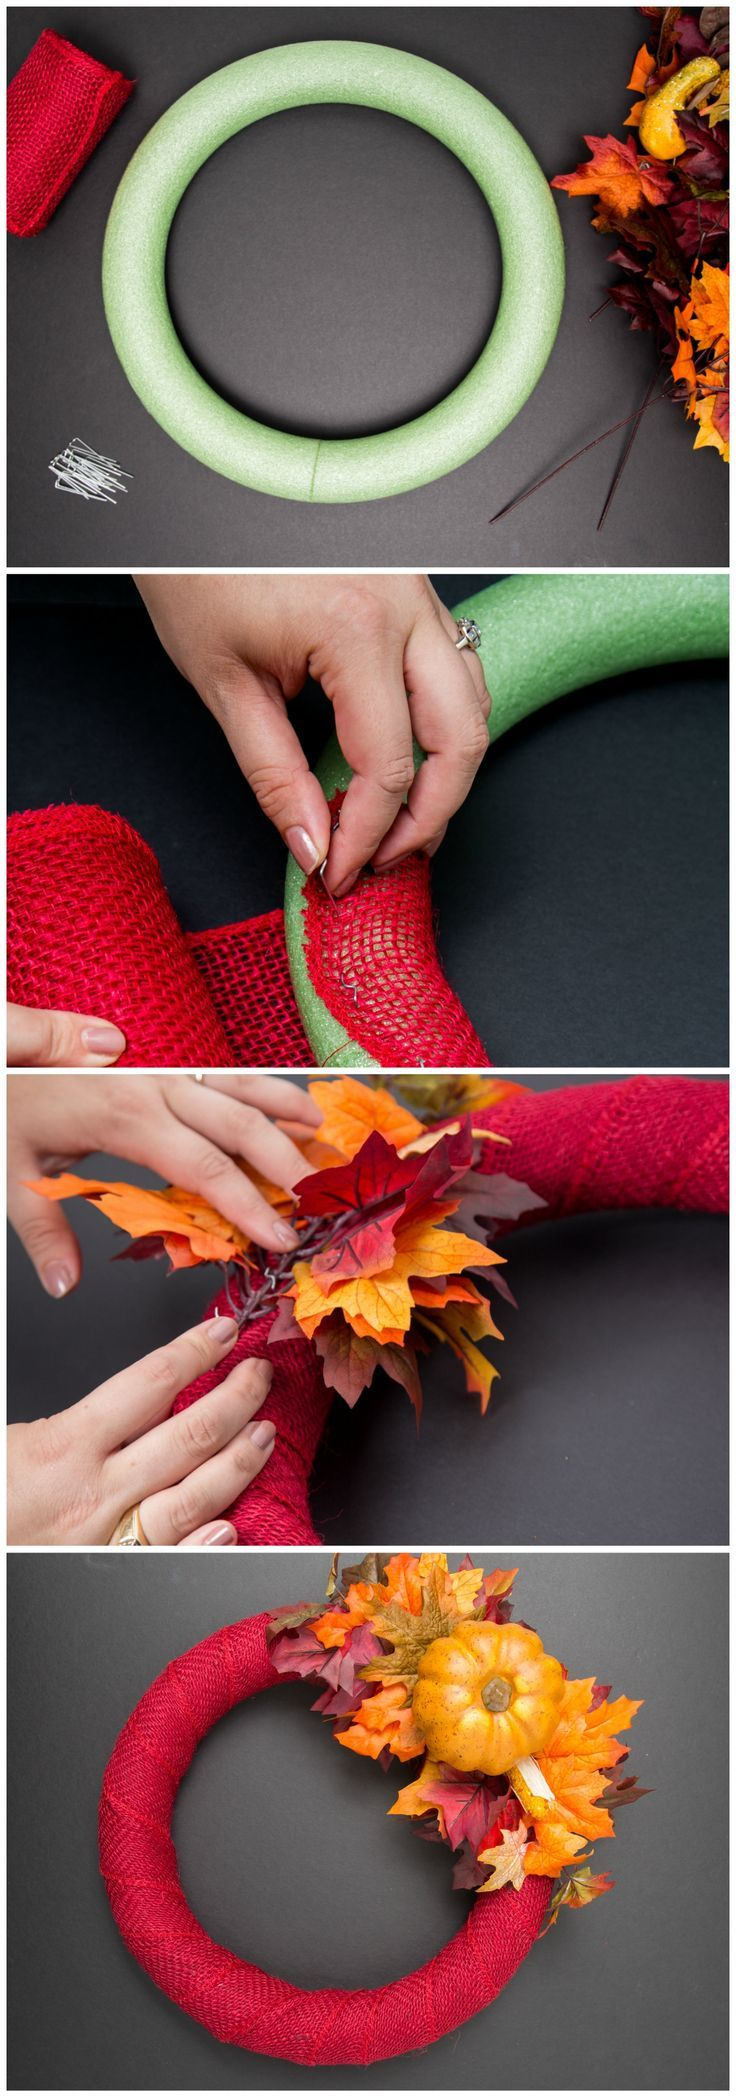 Autumnally awesome: DIY a beautiful fall wreath for your door!